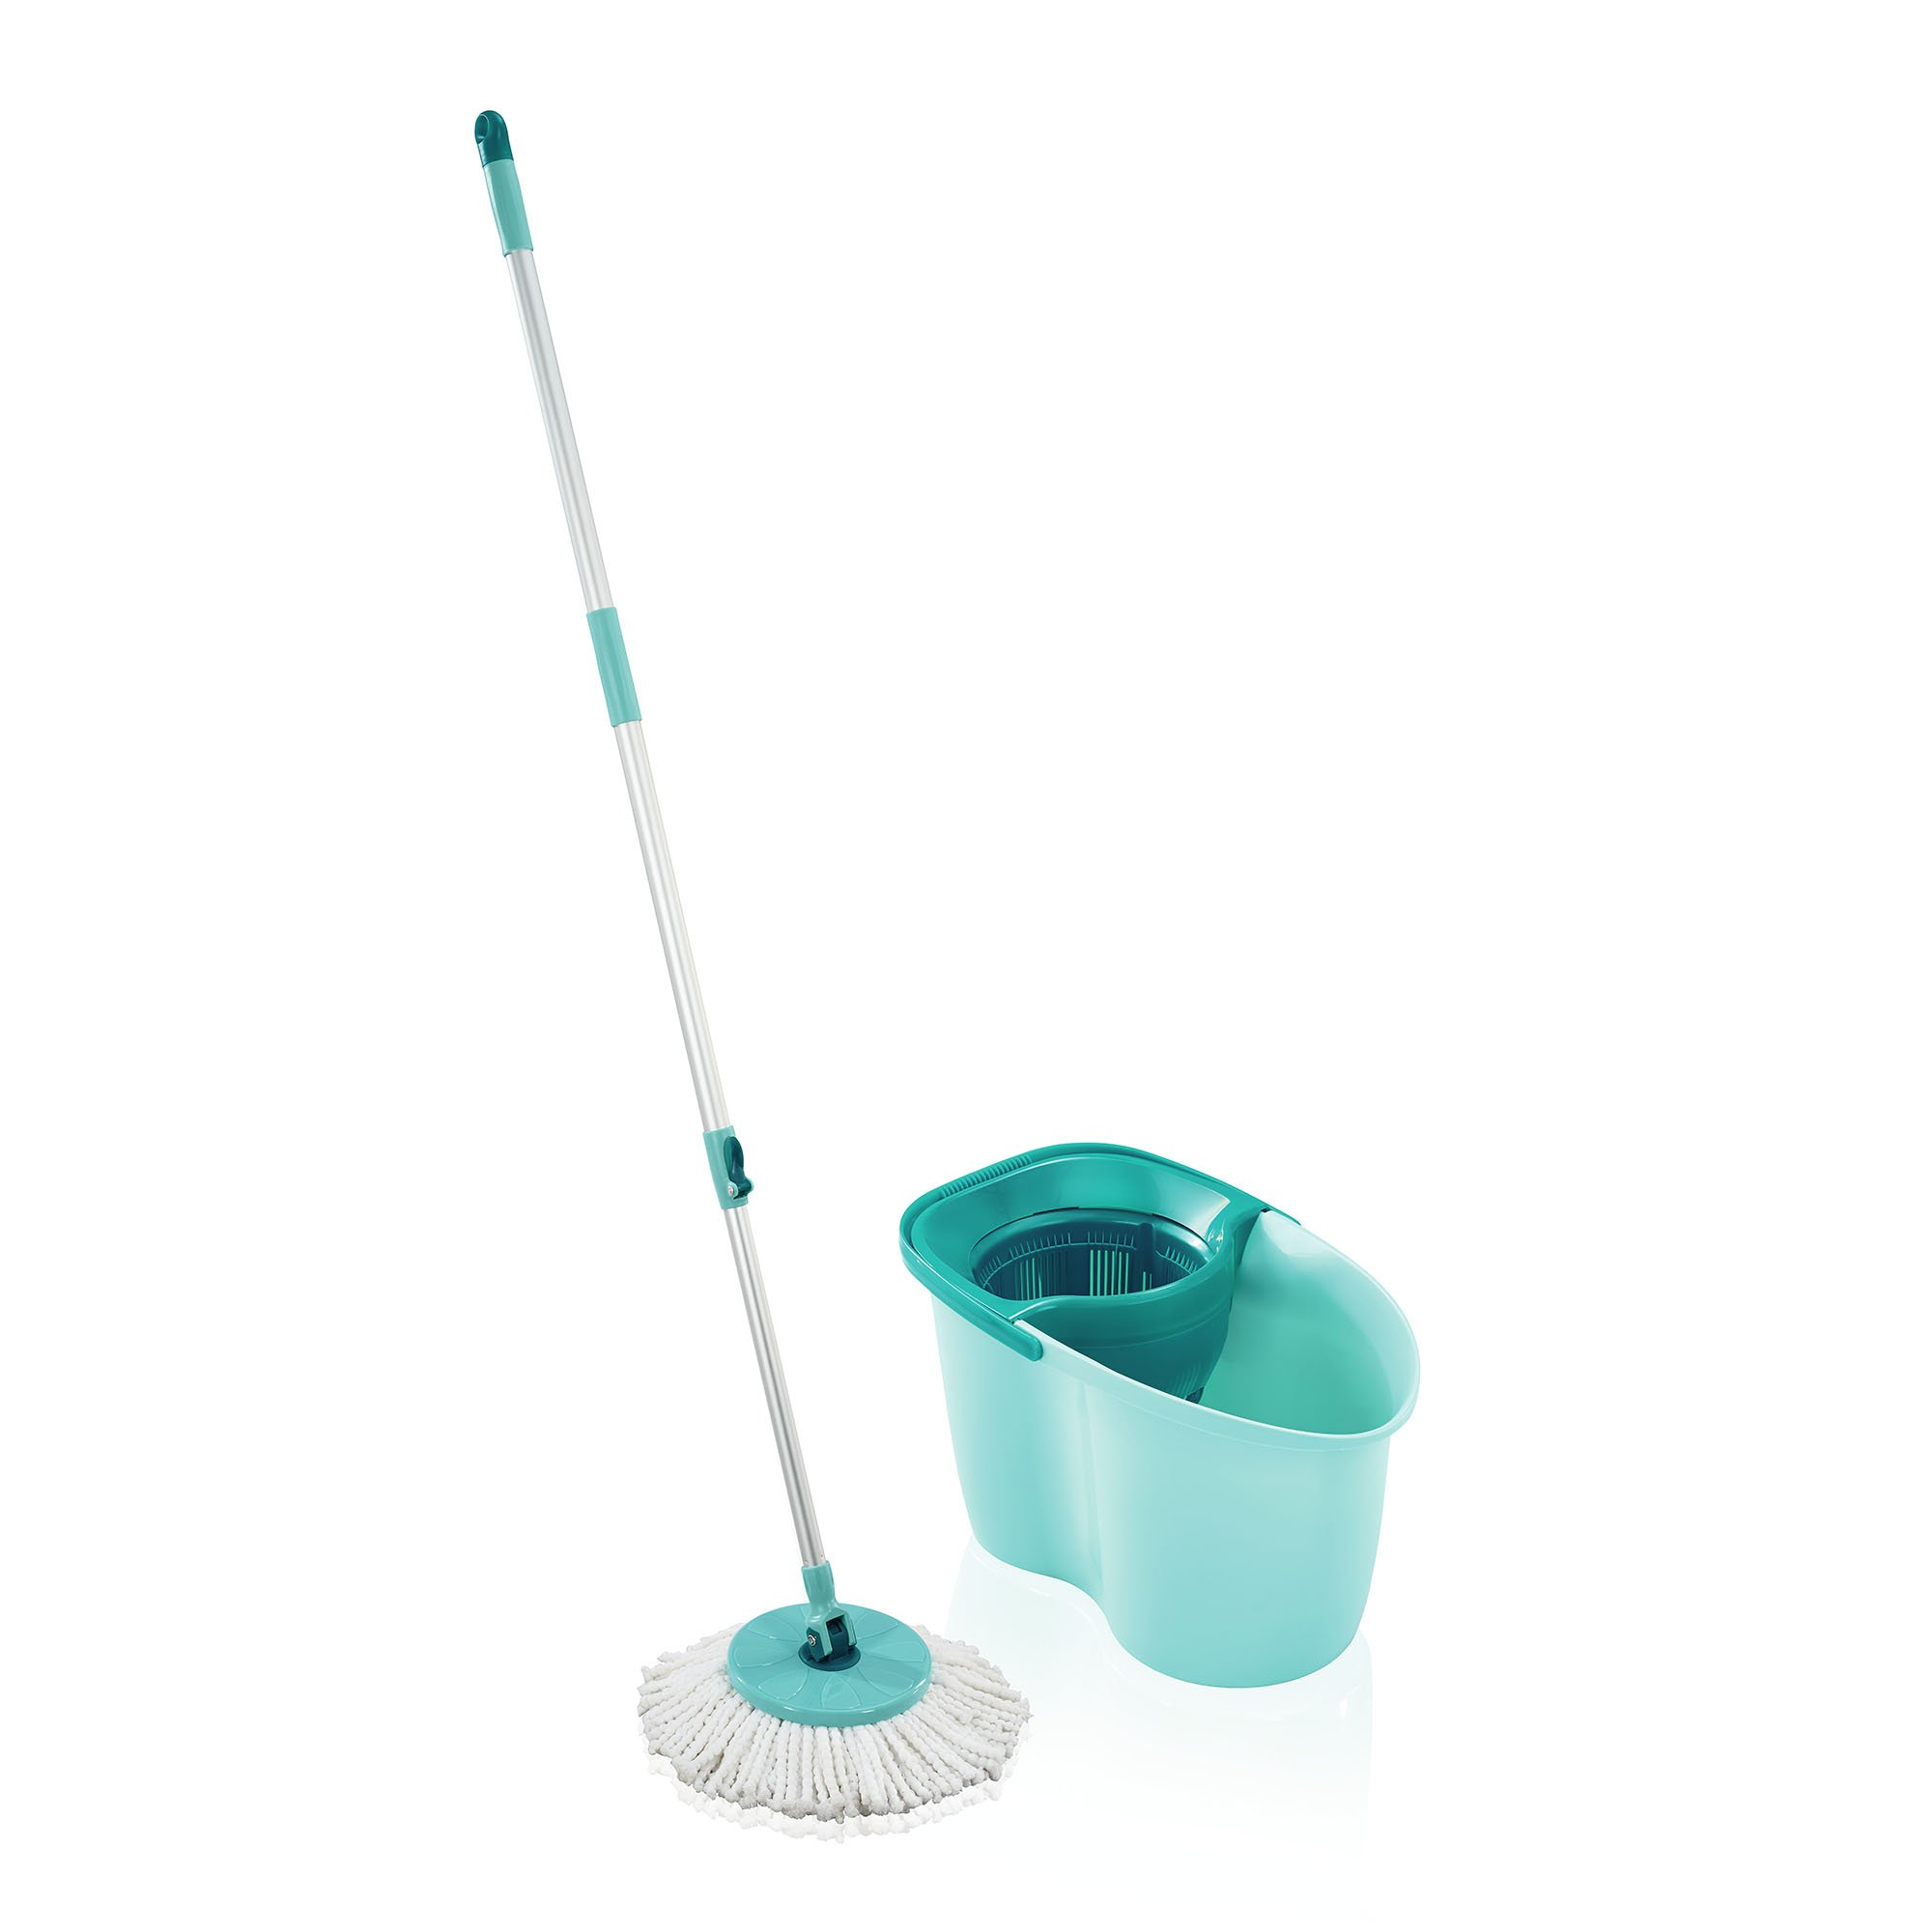 Leifheit 56793 Clean Twist Active Spin Mop and Bucket Set